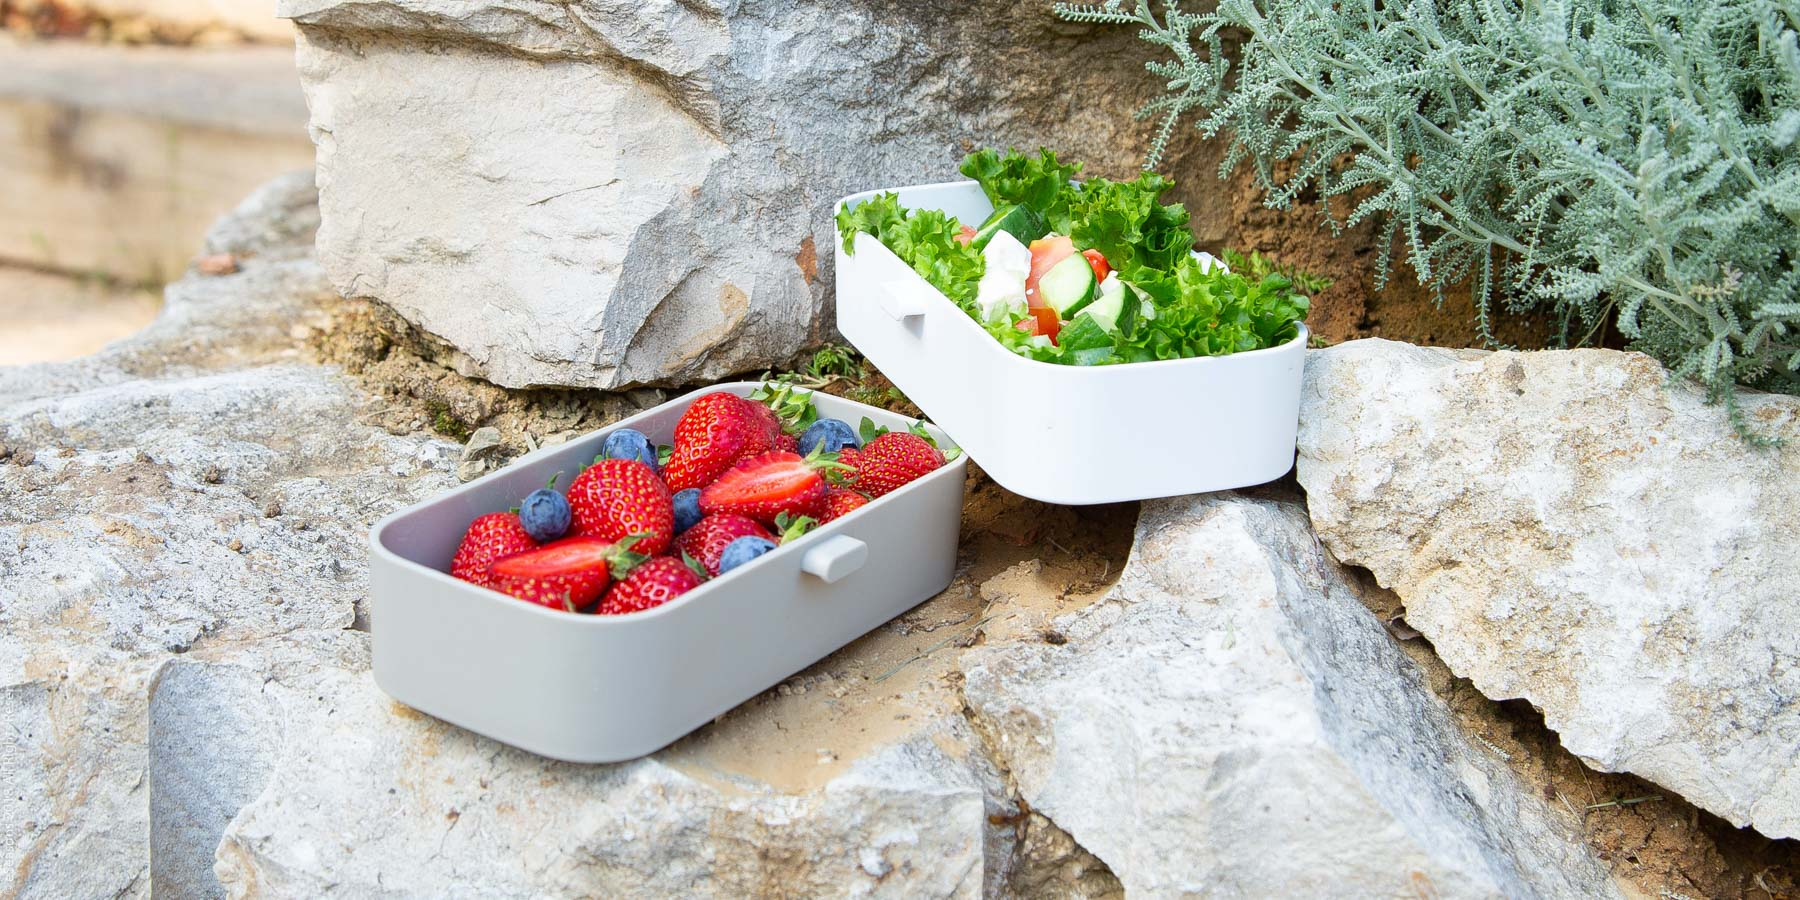 Elegant food photography: eSeasons Bento Lunchbox in Warm Grey with appetizing lunch of strawberries and salad, against rugged quarried stone